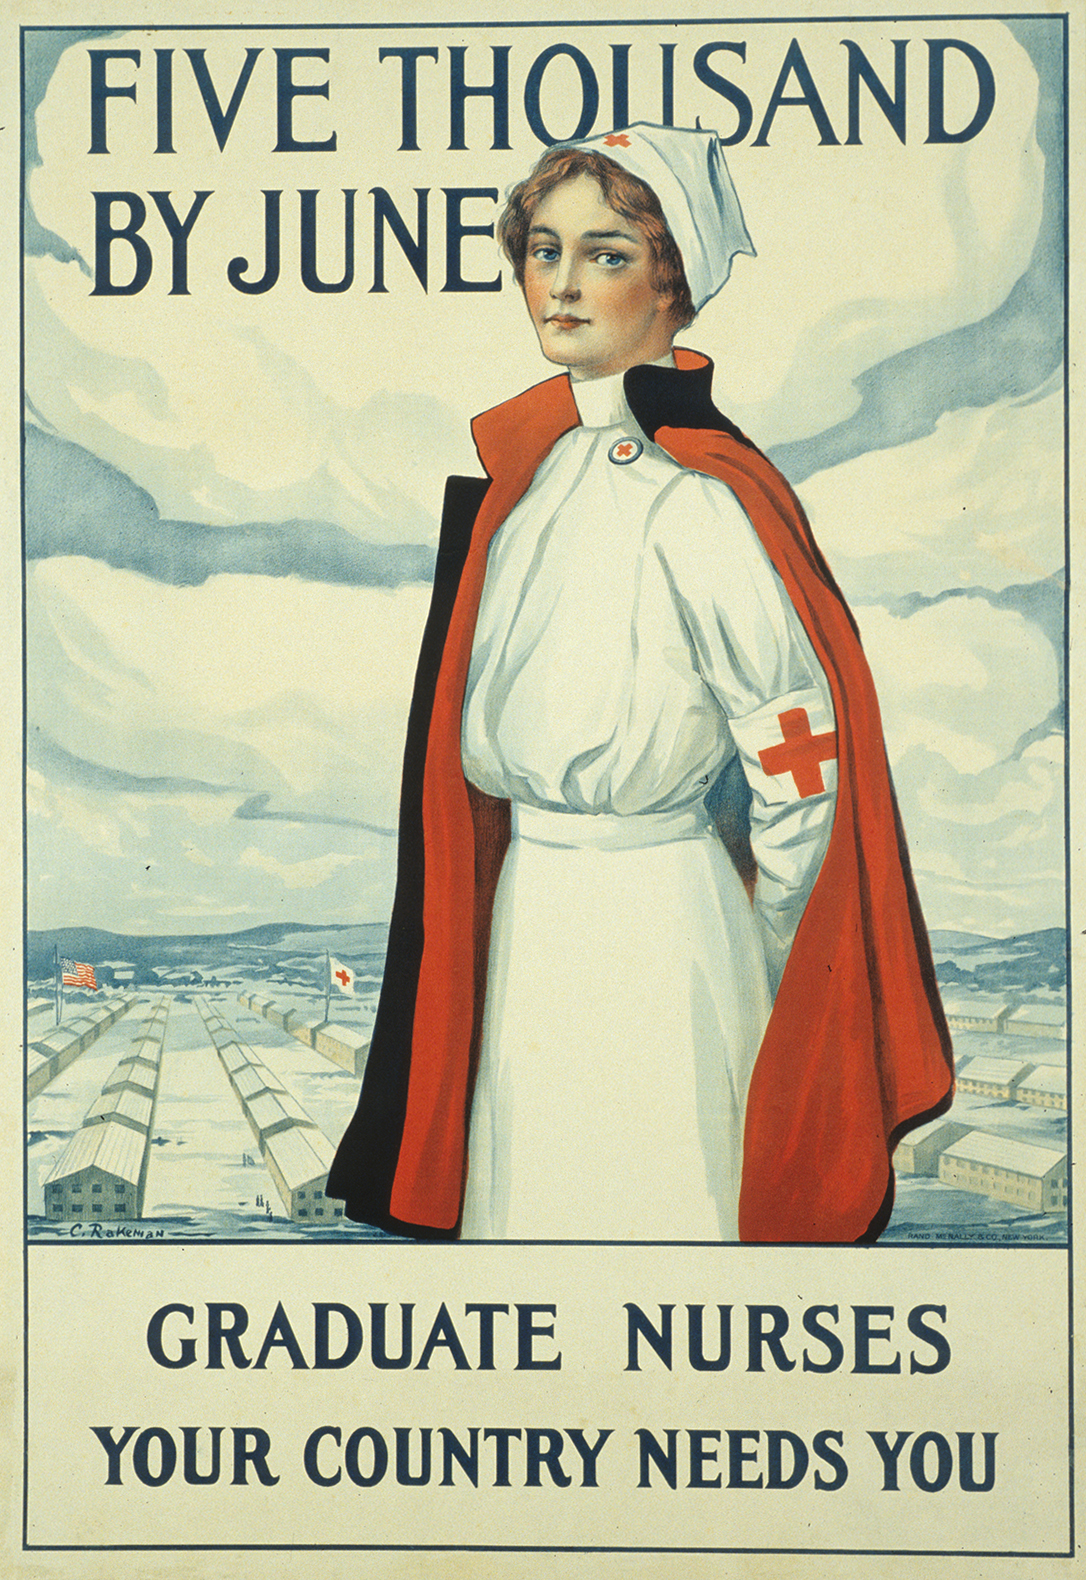 Five Thousand by June, 1918. Graduate Nurses, Your Country Needs You.